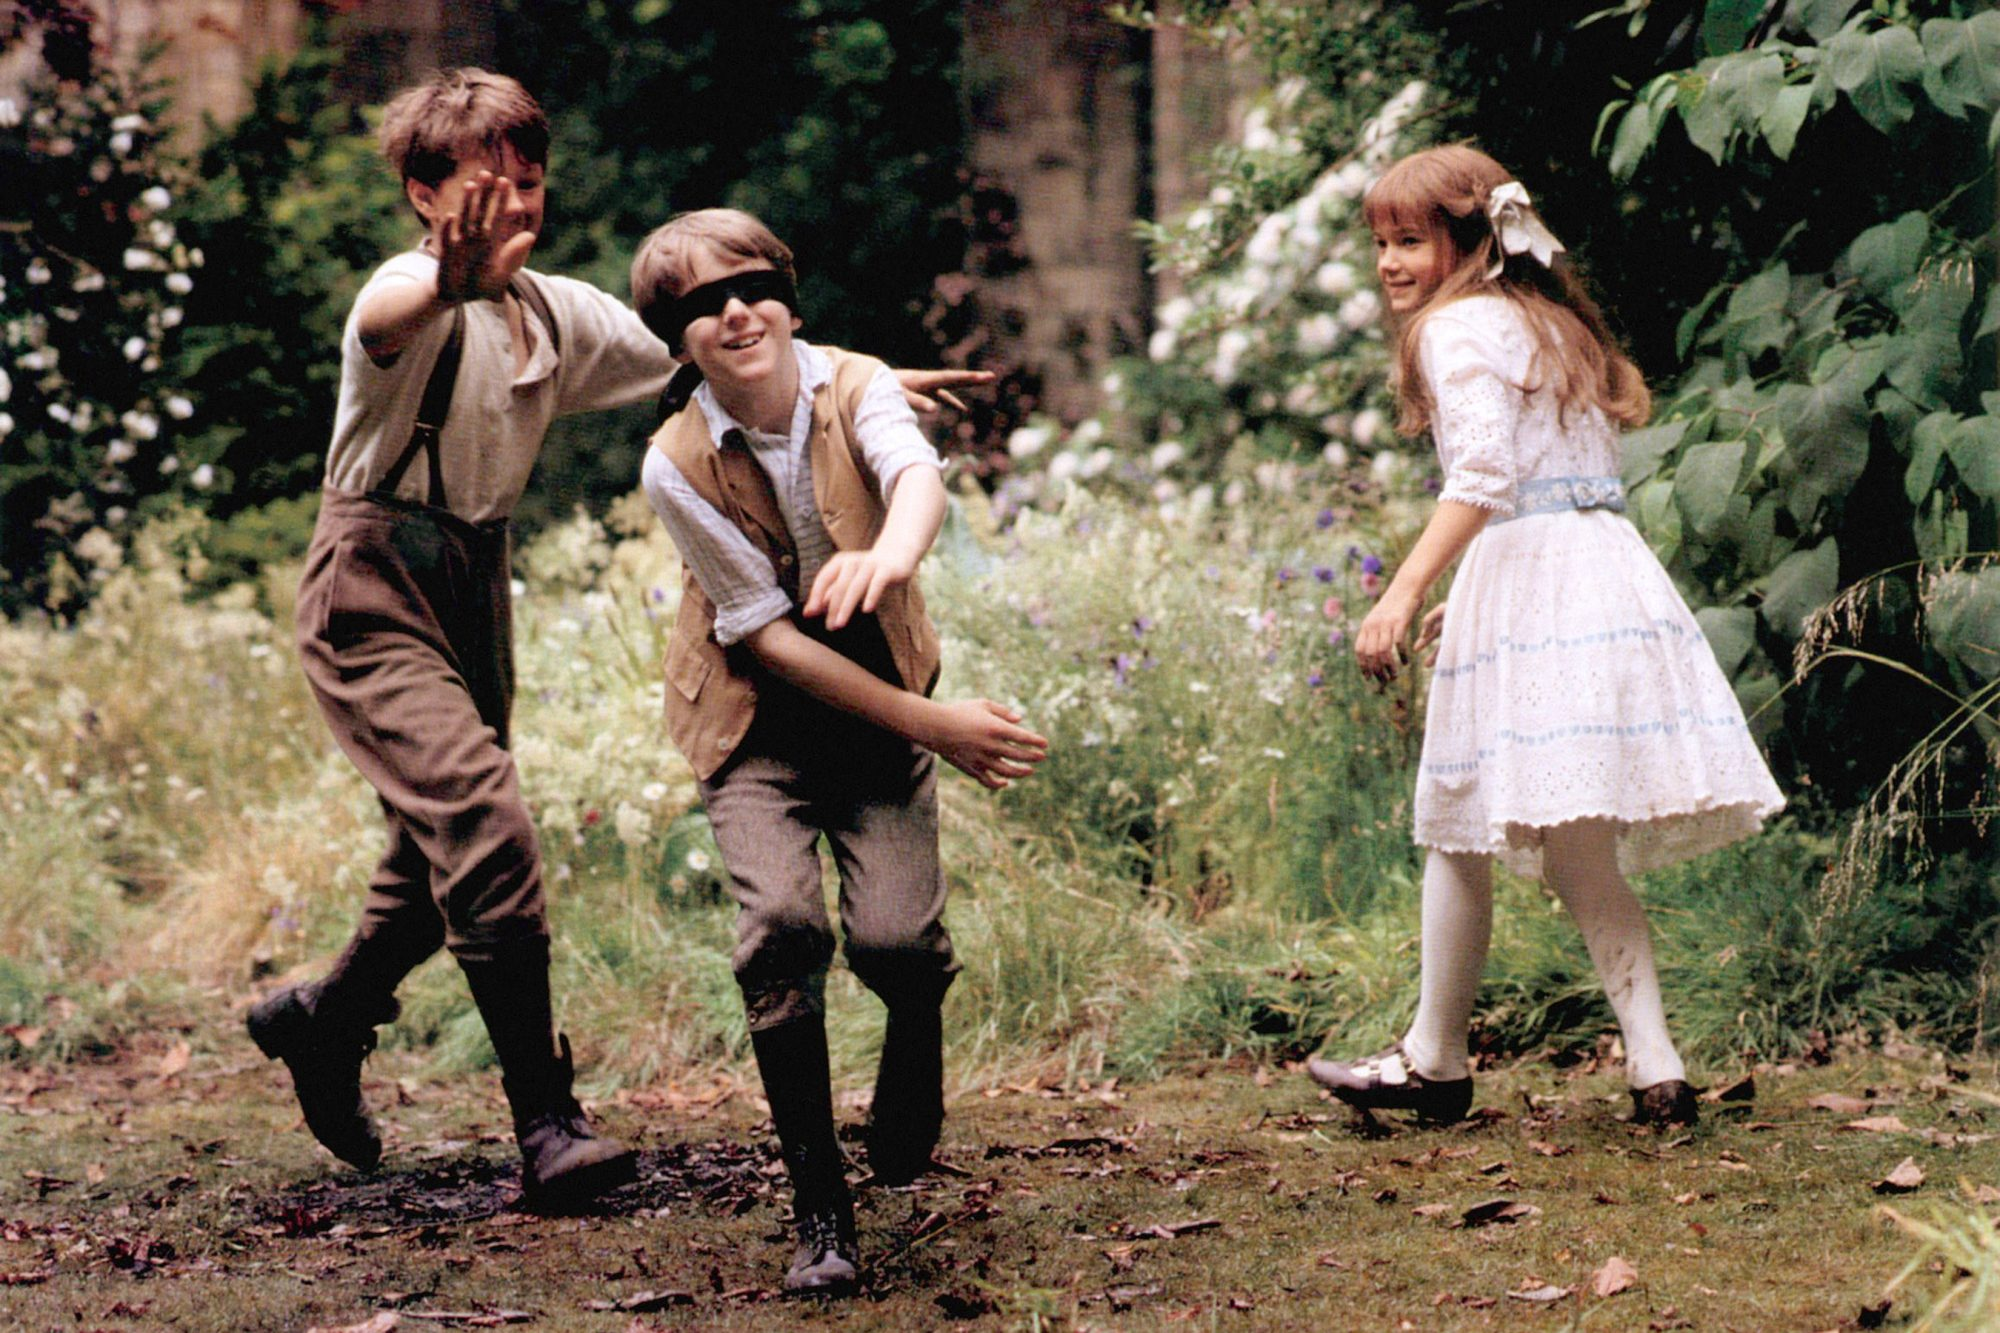 THE SECRET GARDEN, from left, Andrew Knott, Heydon Prowse, Kate Maberly, 1993, ©Warner Bros./courtes